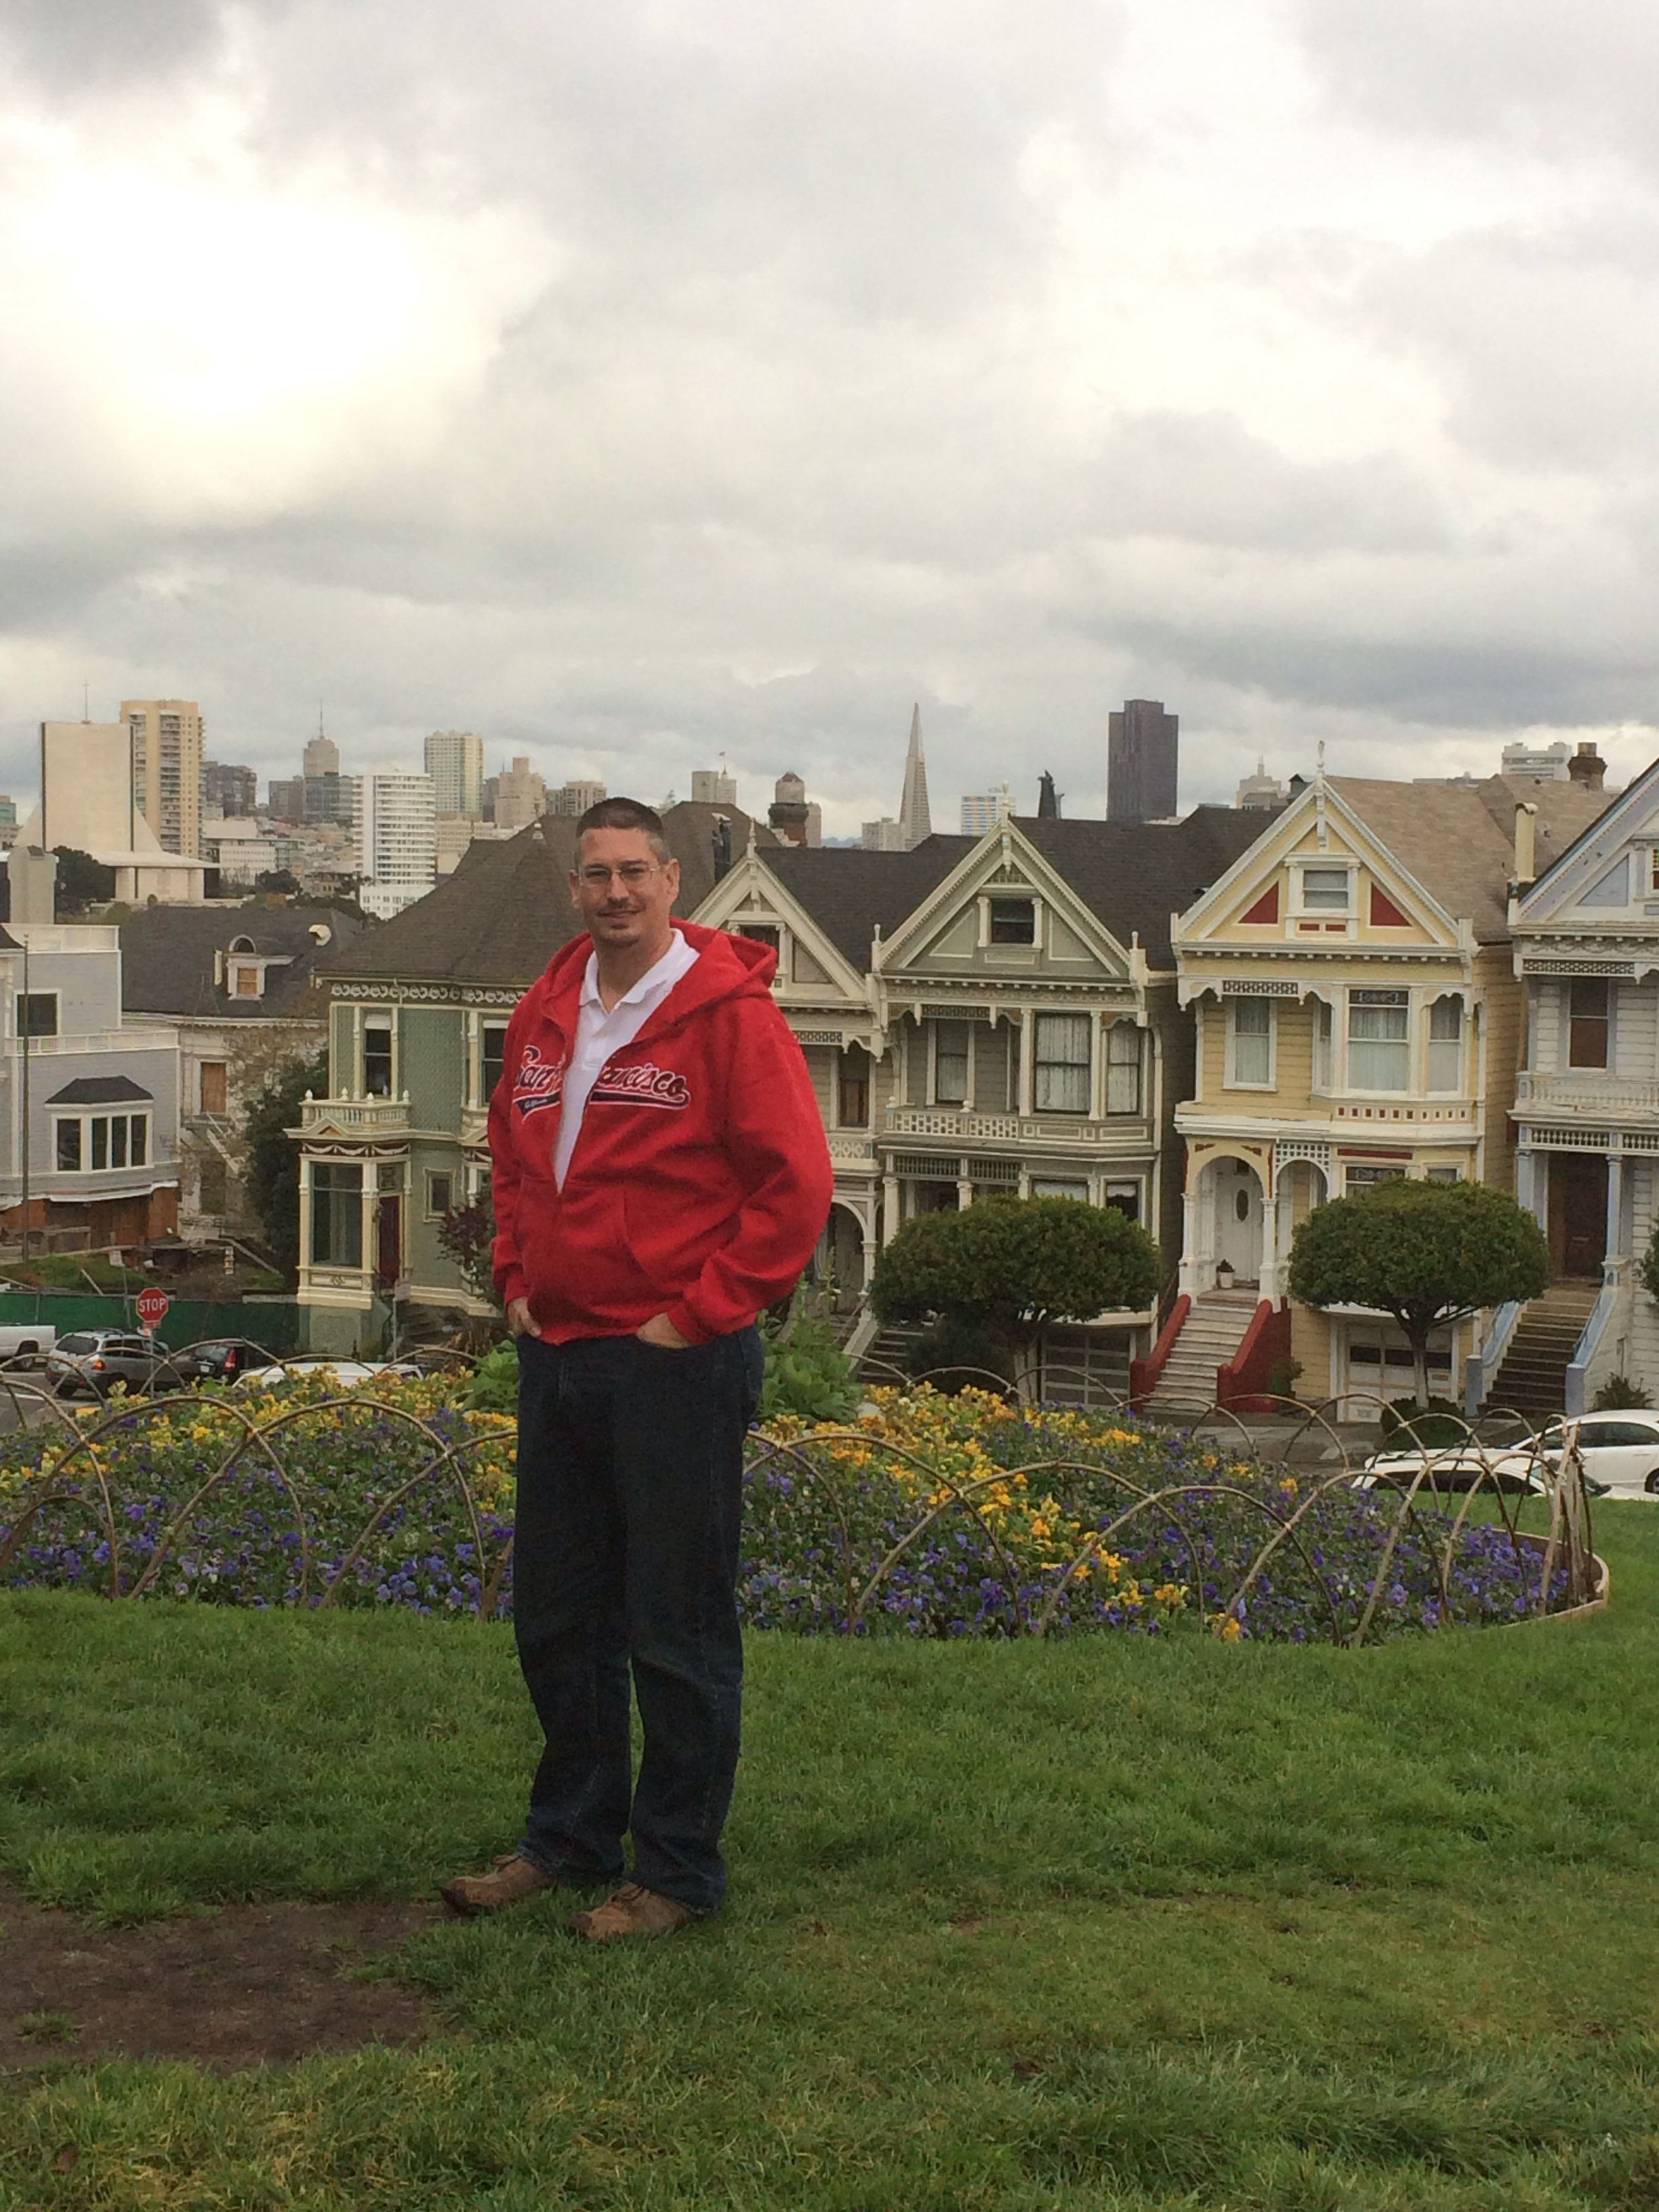 Robbie in front of the painted ladies